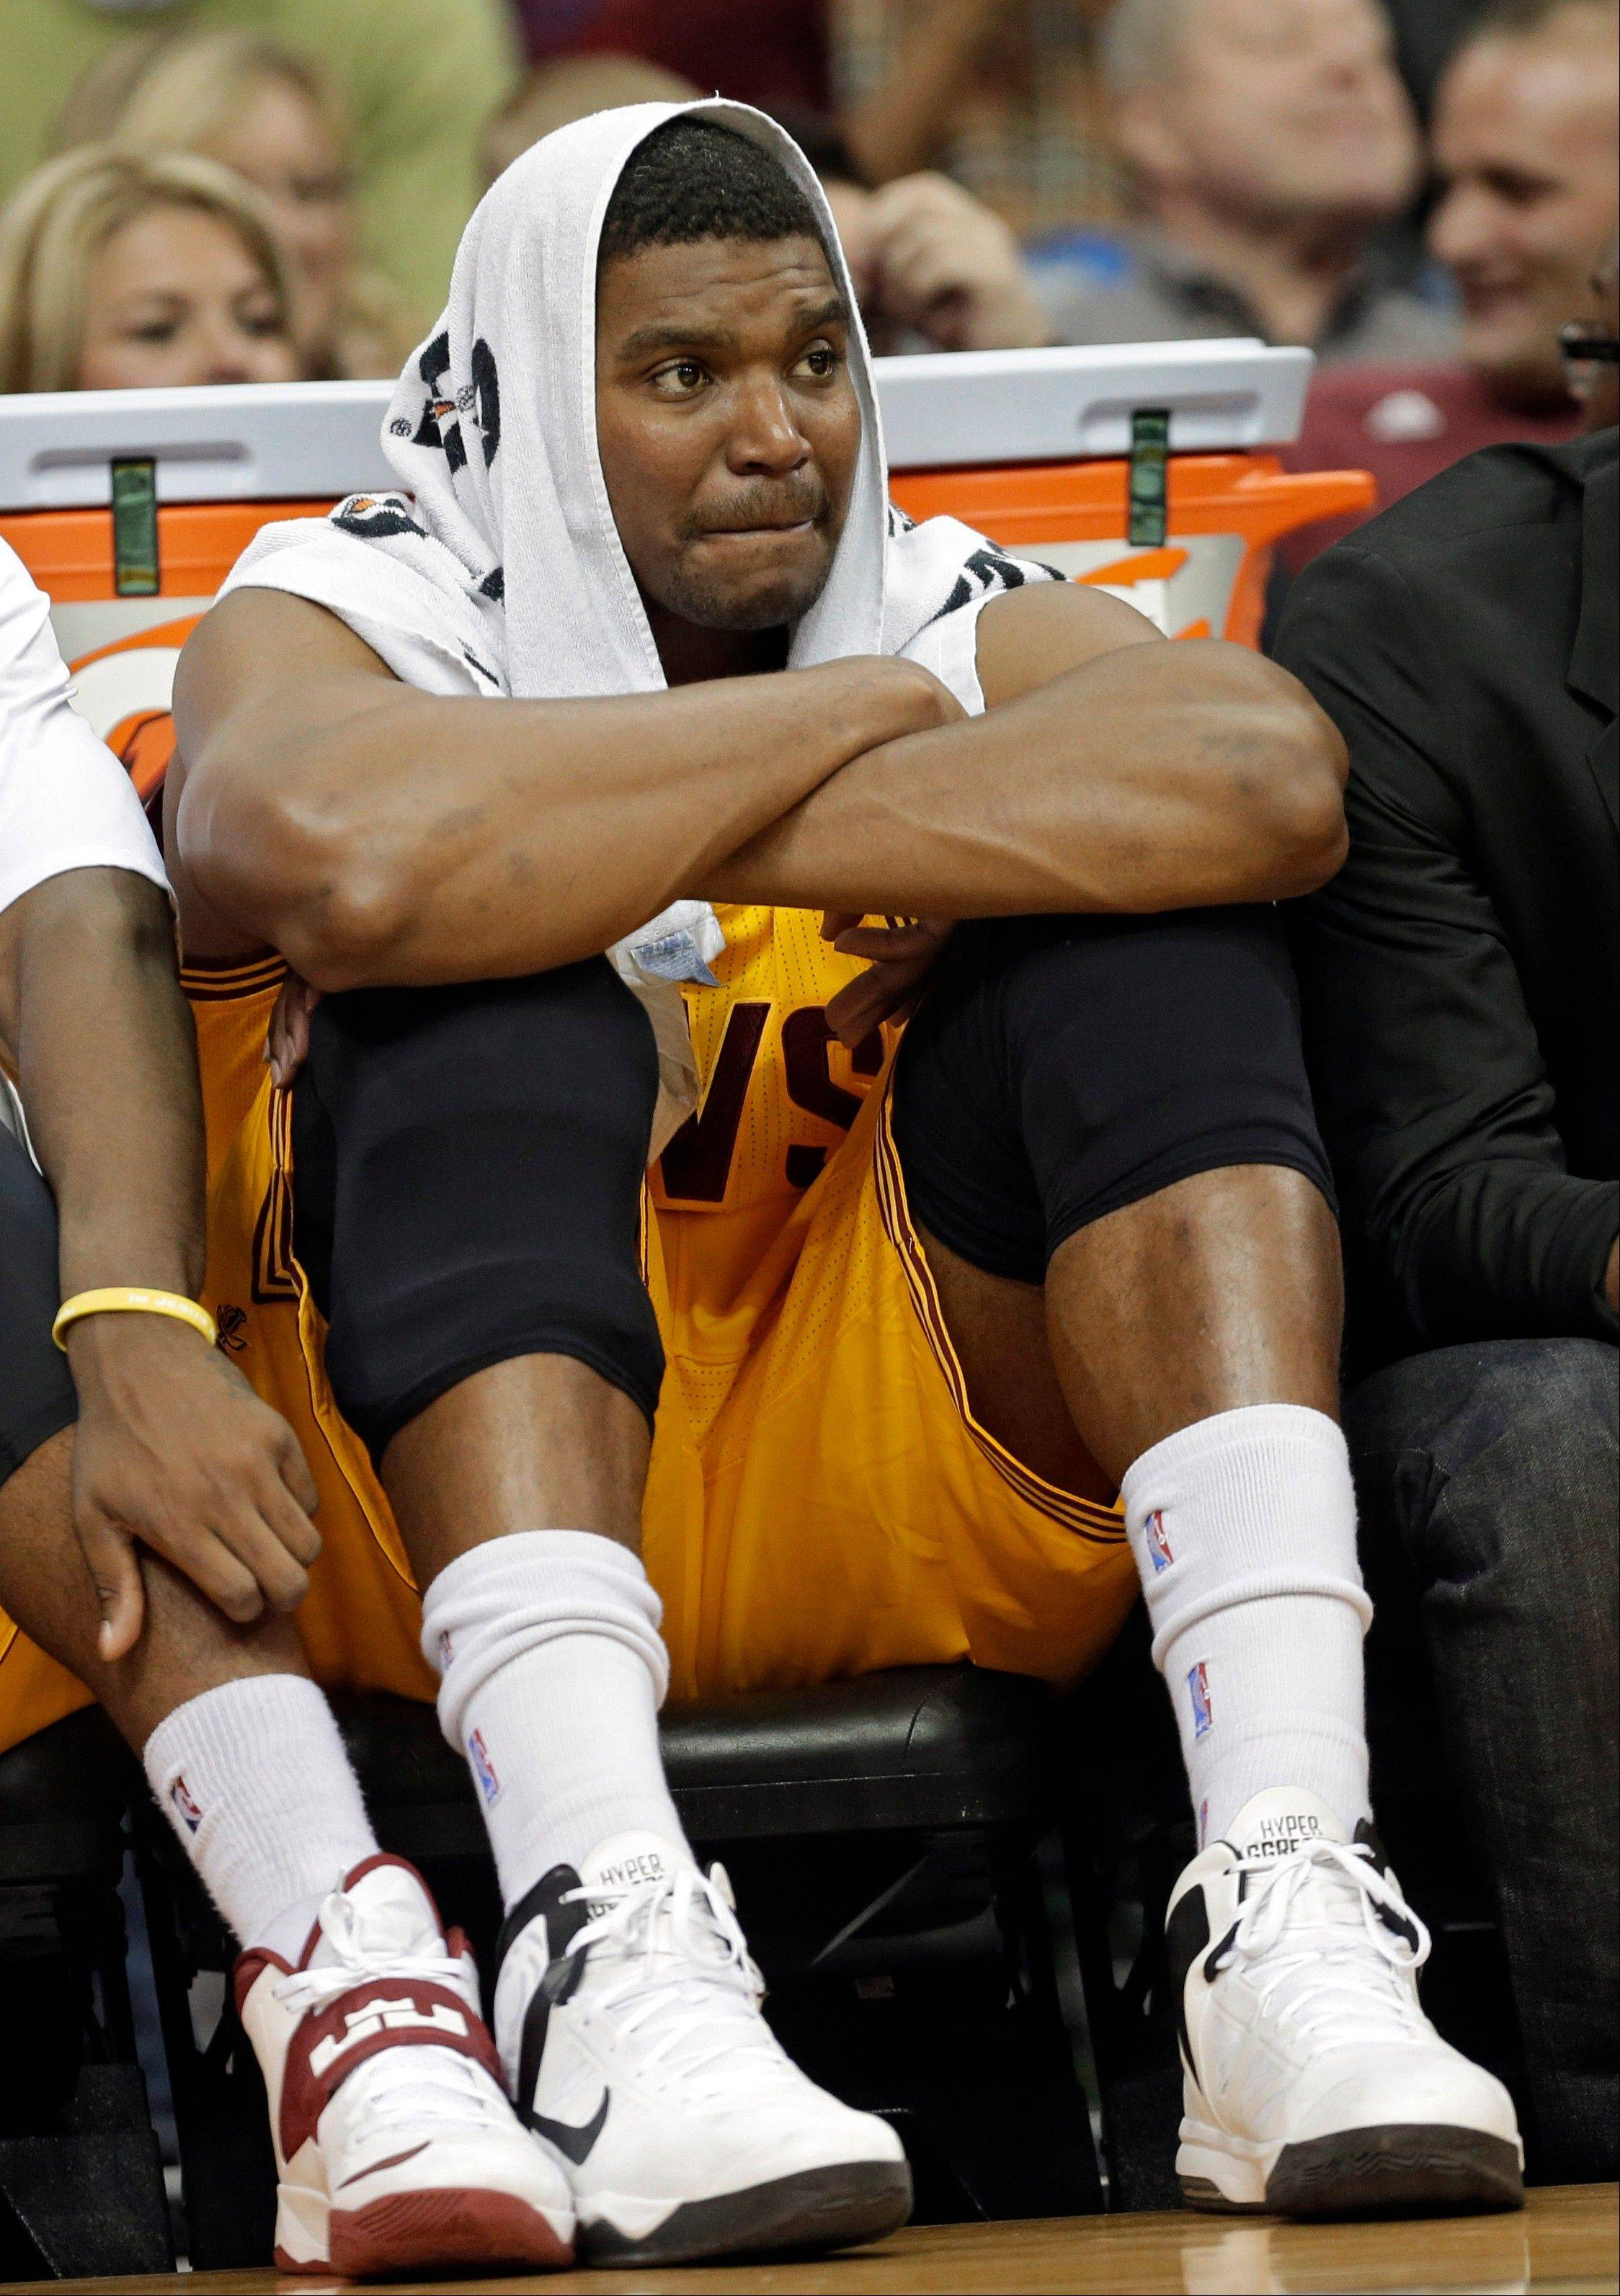 Cleveland center Andrew Bynum was traded to the Bulls in the Luol Deng deal, but is expected to be released by the team.